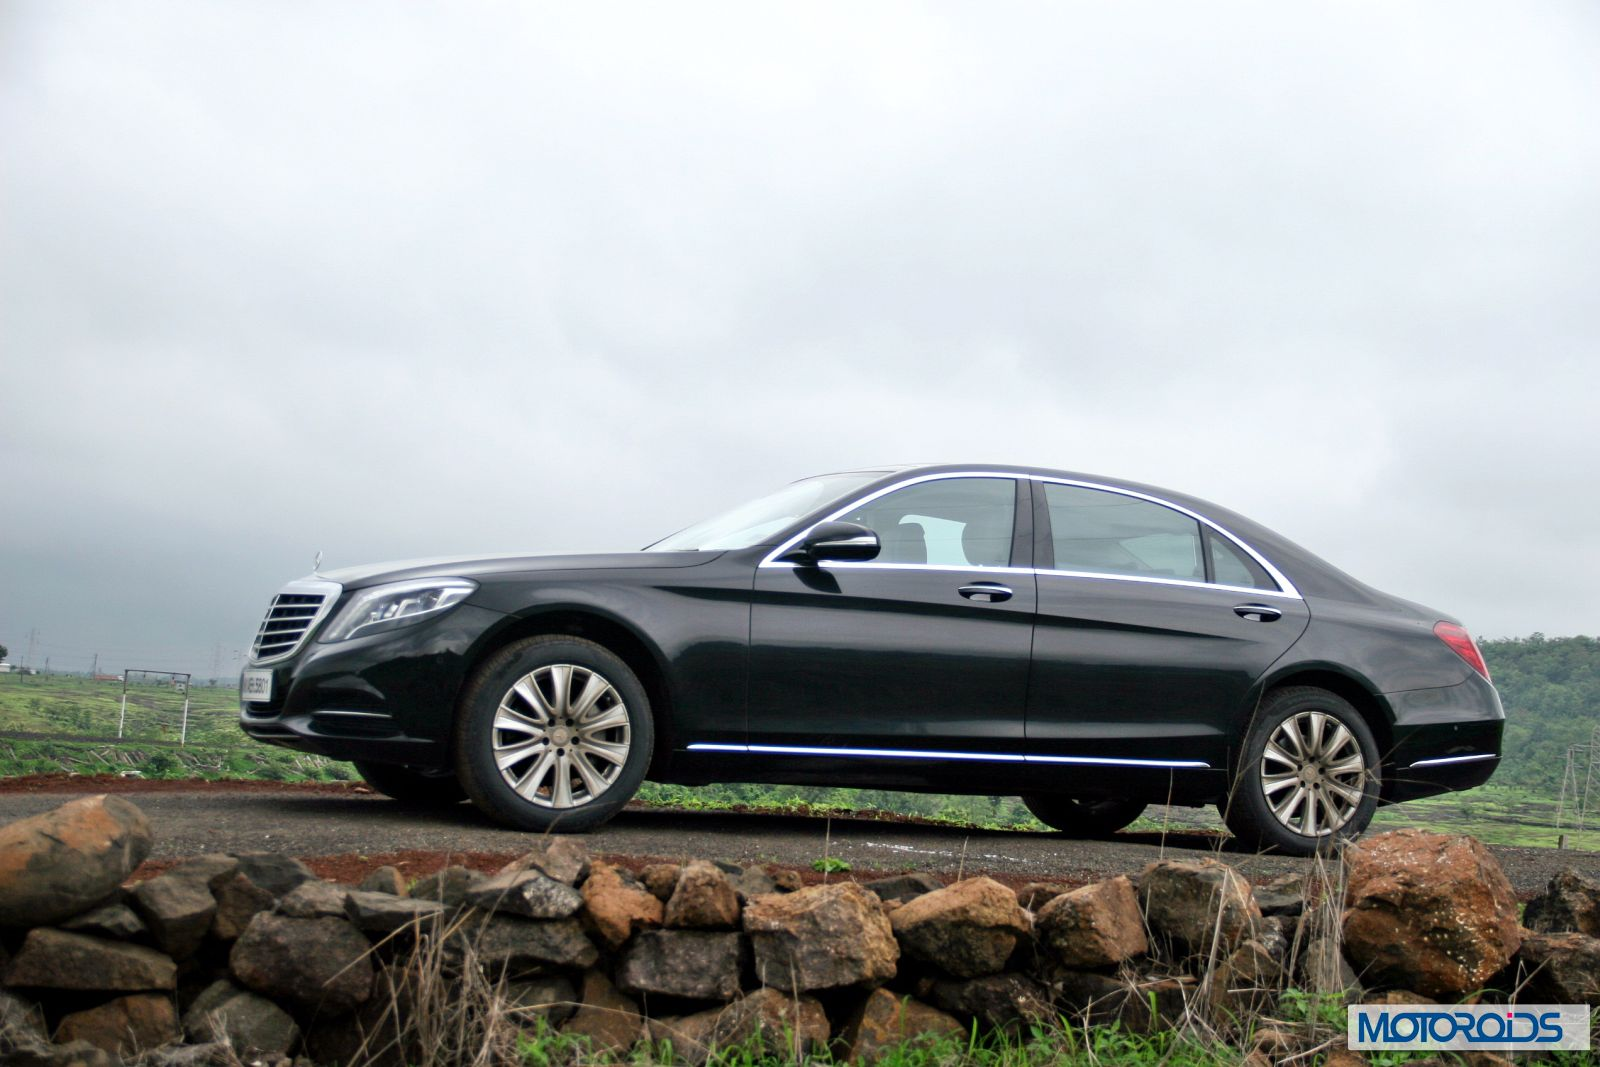 2014 S Class S350 CDI India review (4)